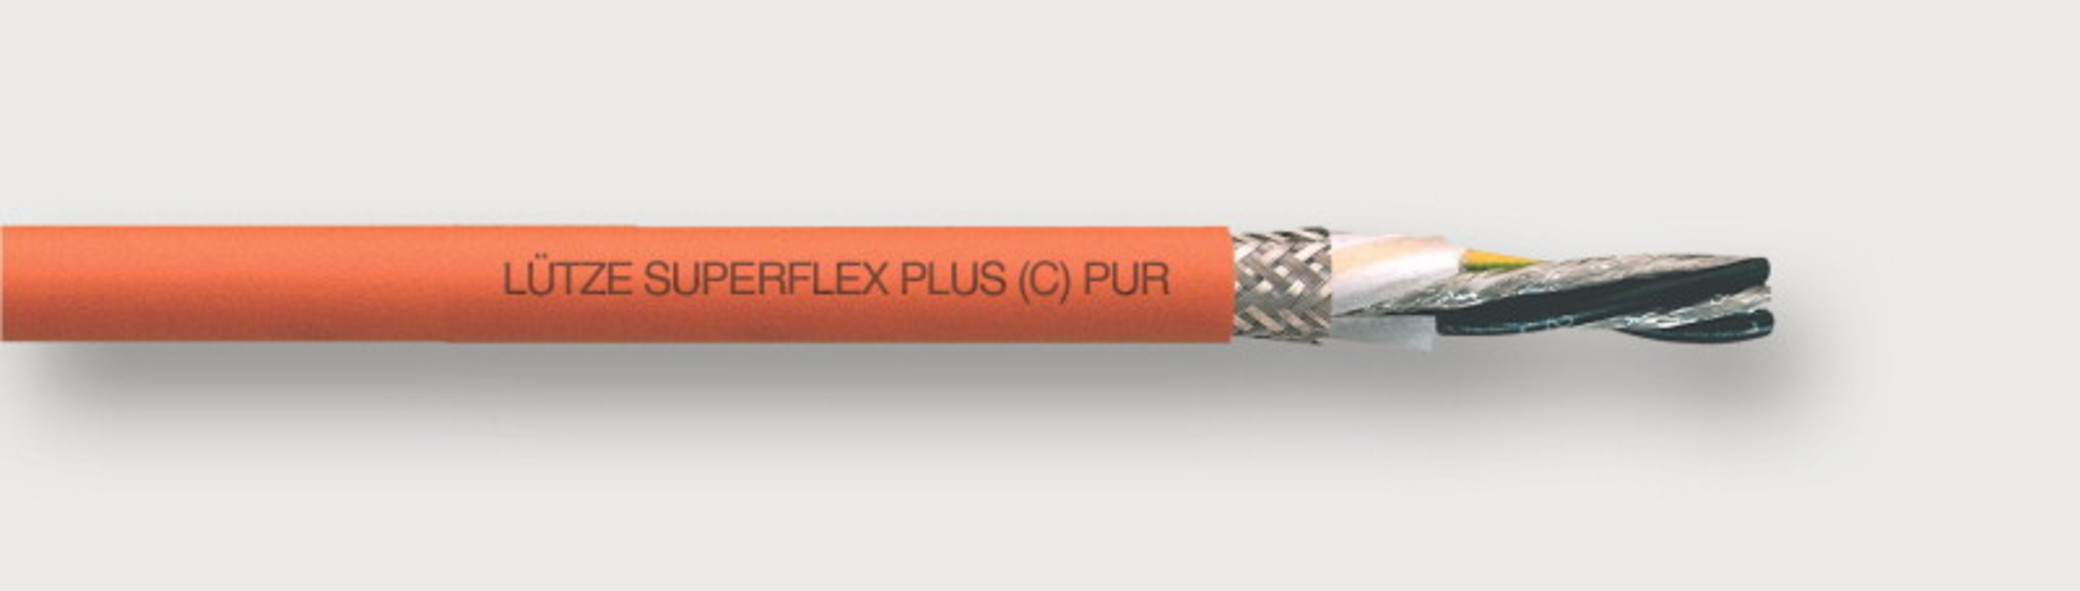 111420 - LÜTZE SUPERFLEX® PLUS M (C) PUR SERVO 0.6/1 kV High Flexing Motor Cable for Siemens and other systems For highest requirements